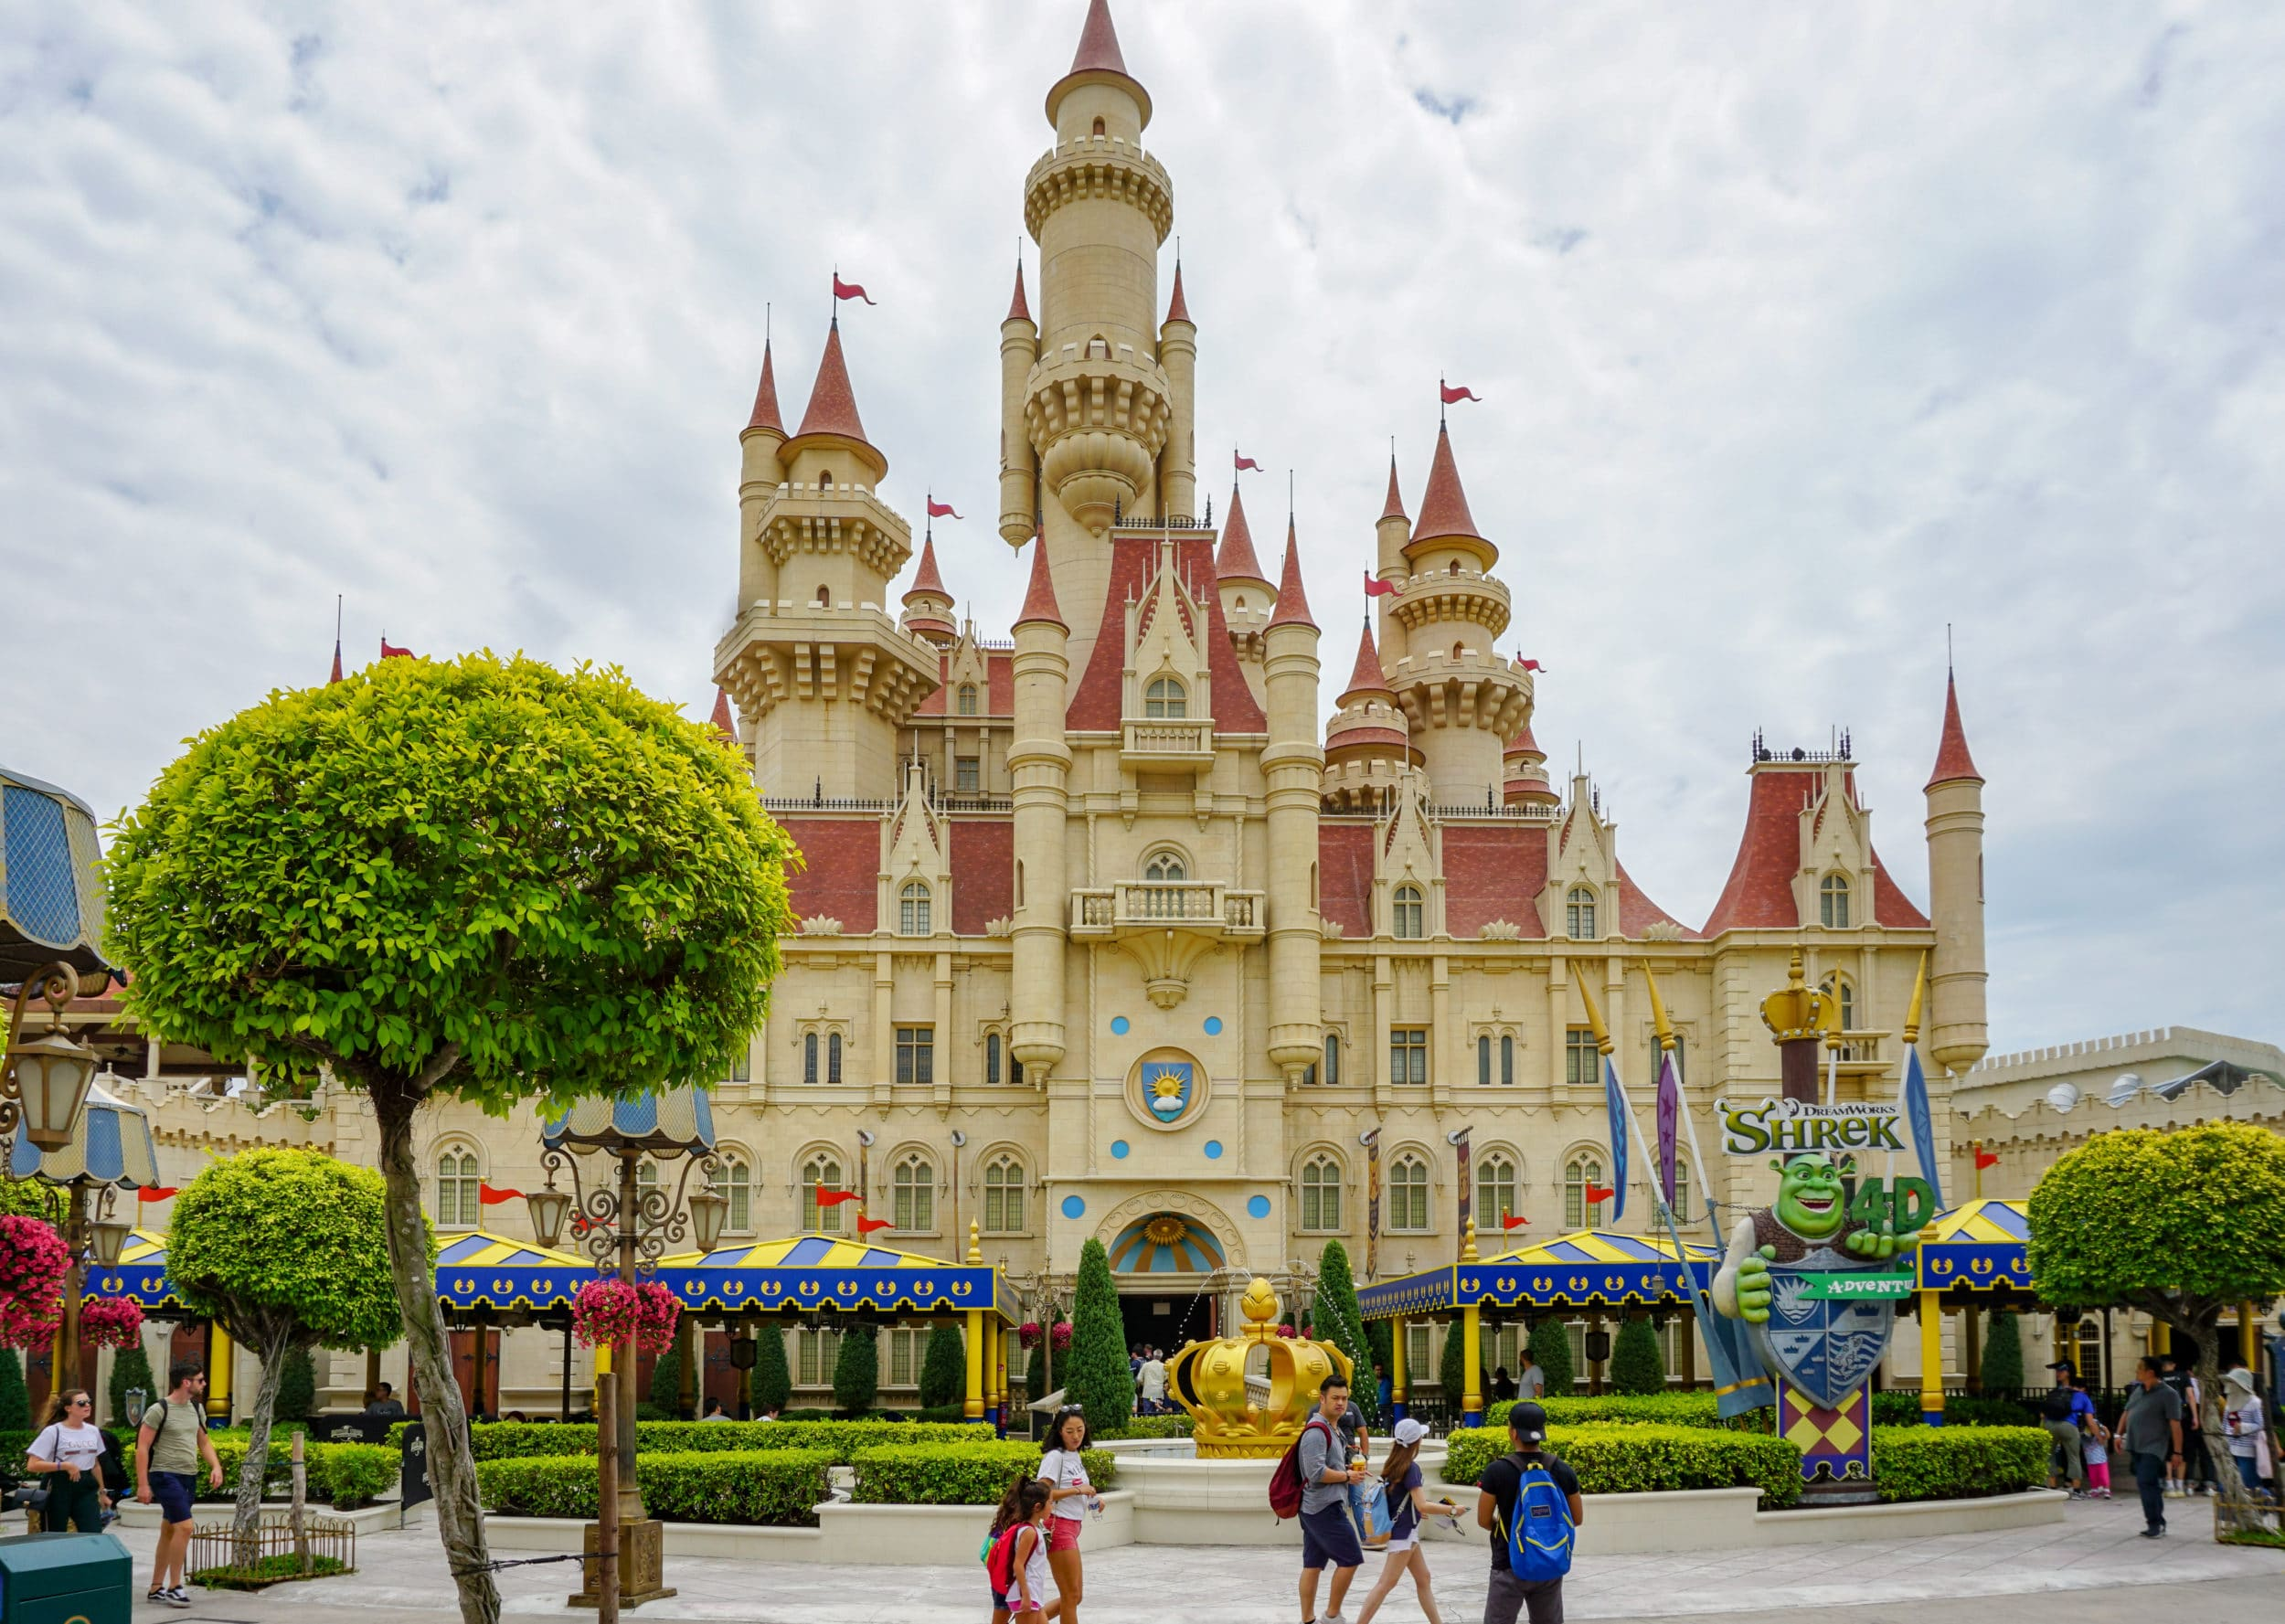 Shrek's castle at Universal Studios Singapore